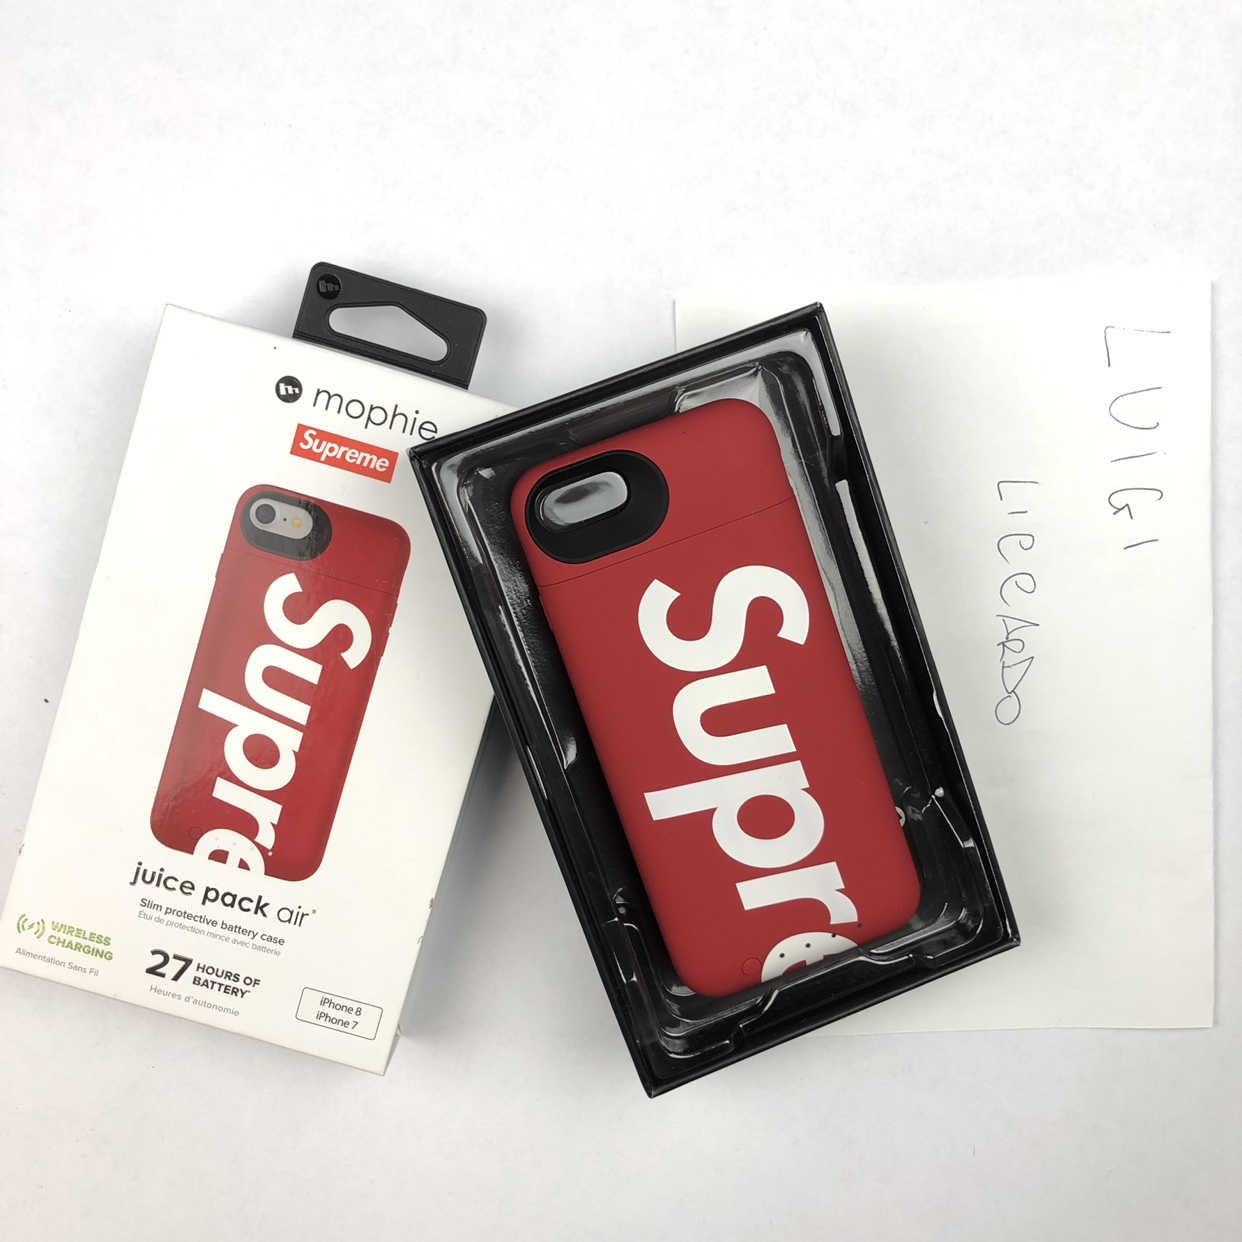 scarpe sportive 61287 80e6f Supreme mophie cover ricaricabile iPhone 7 i phone... - Depop